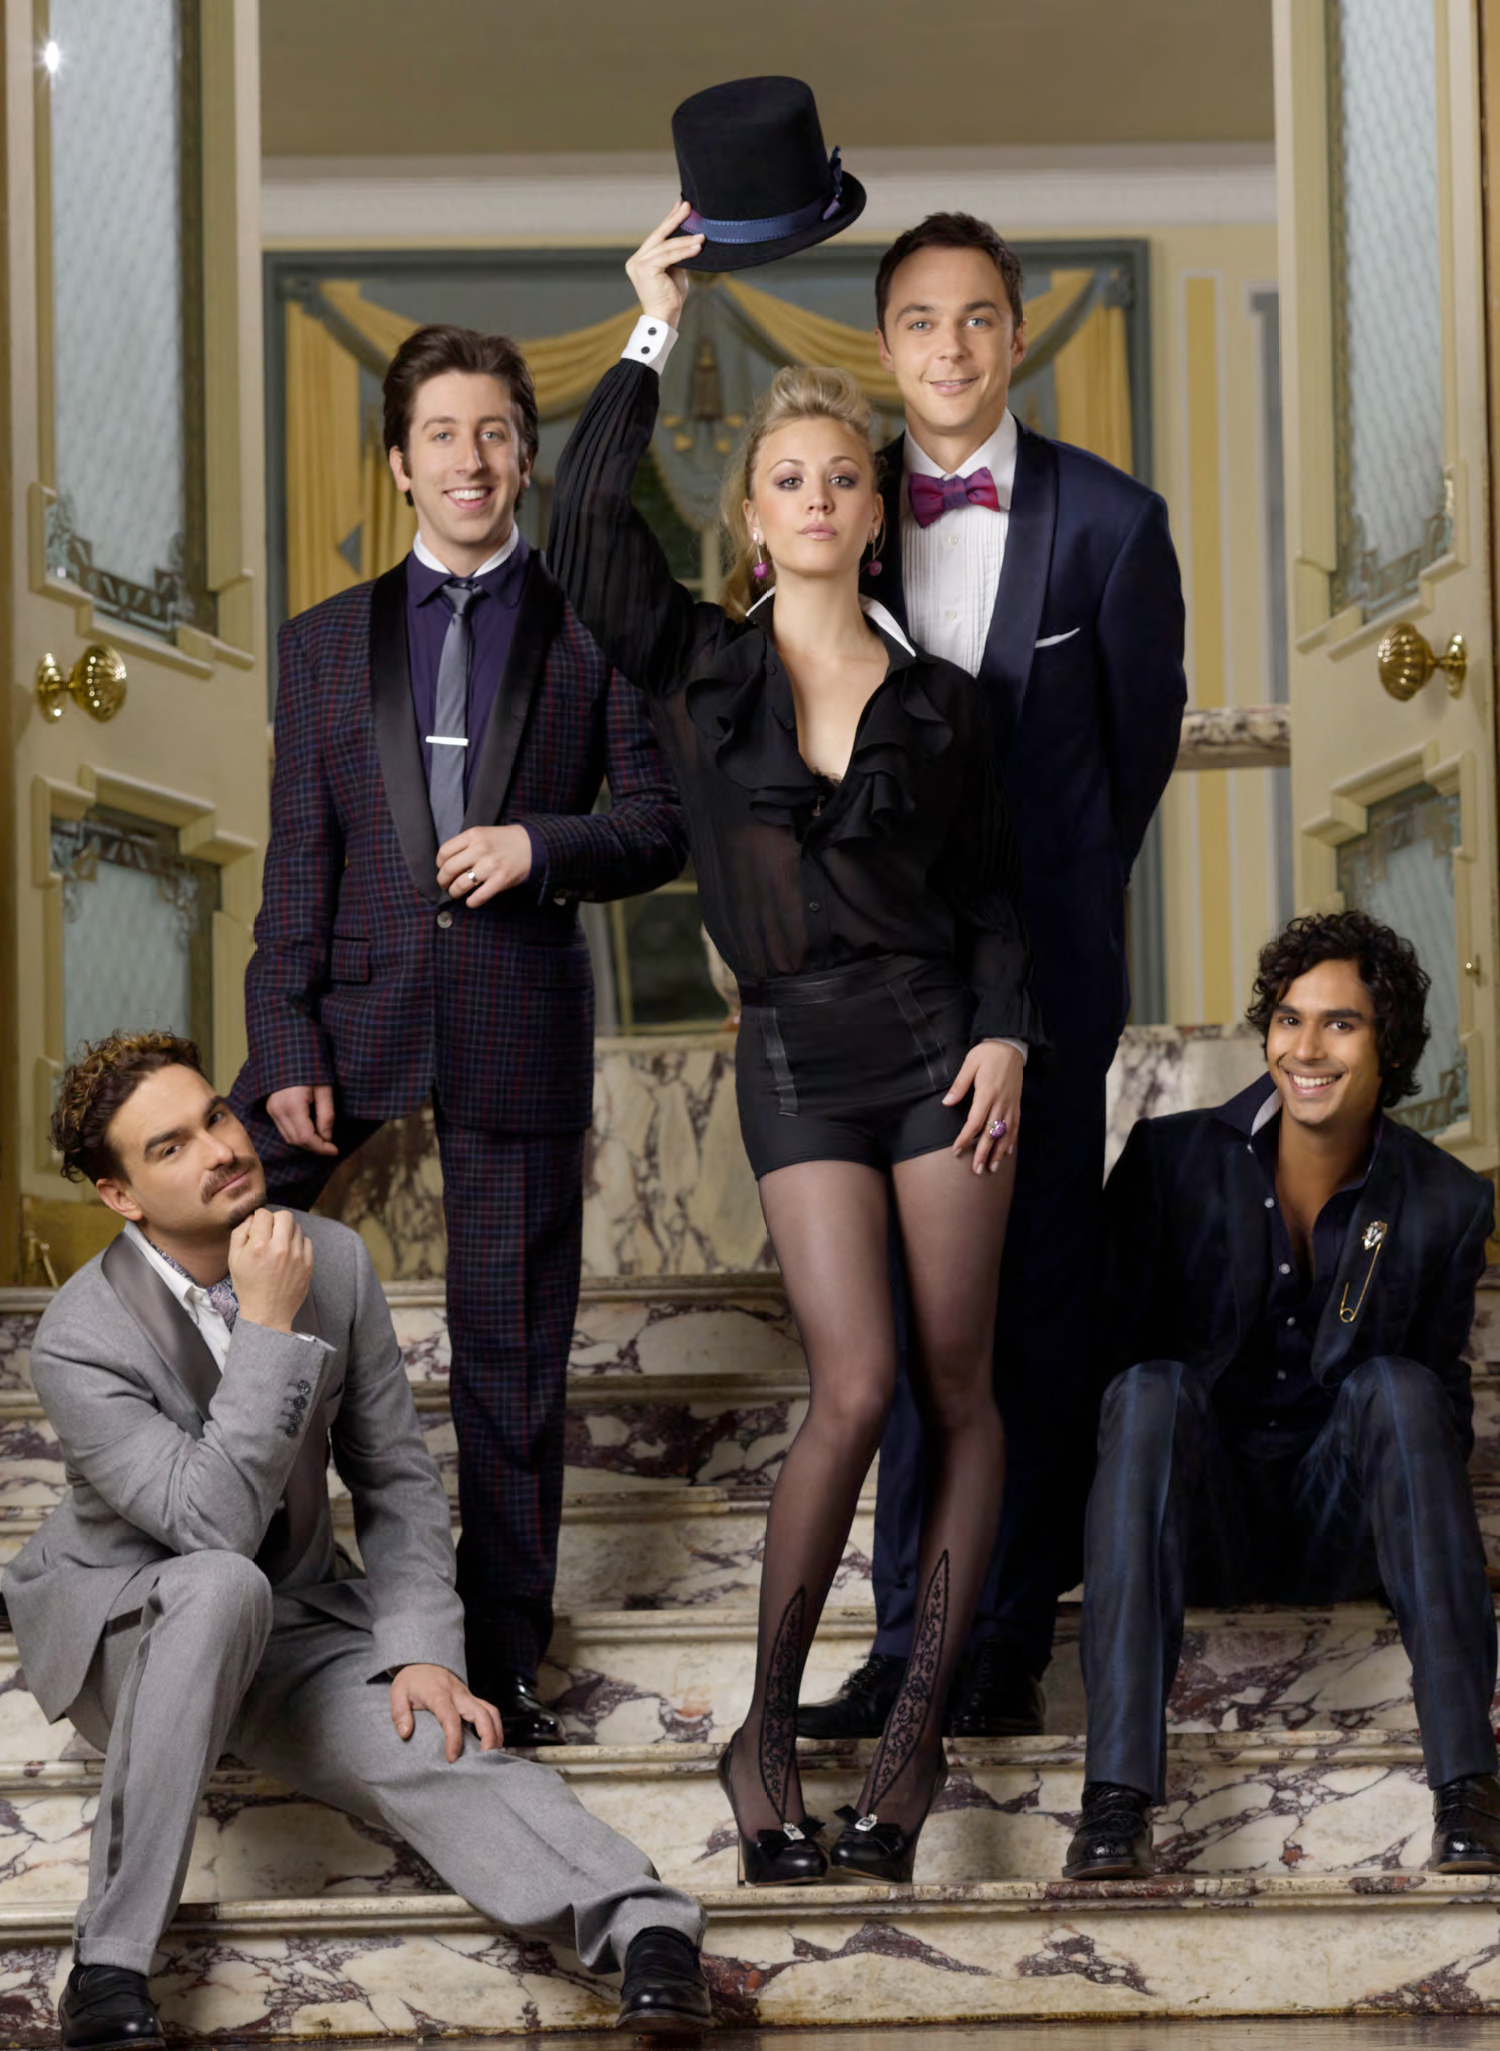 Teori Big Bang Big Bang Teori Adalah New Season 3 Promo The Big Bang Theory Photo 7445896 Fanpop 1500x2051